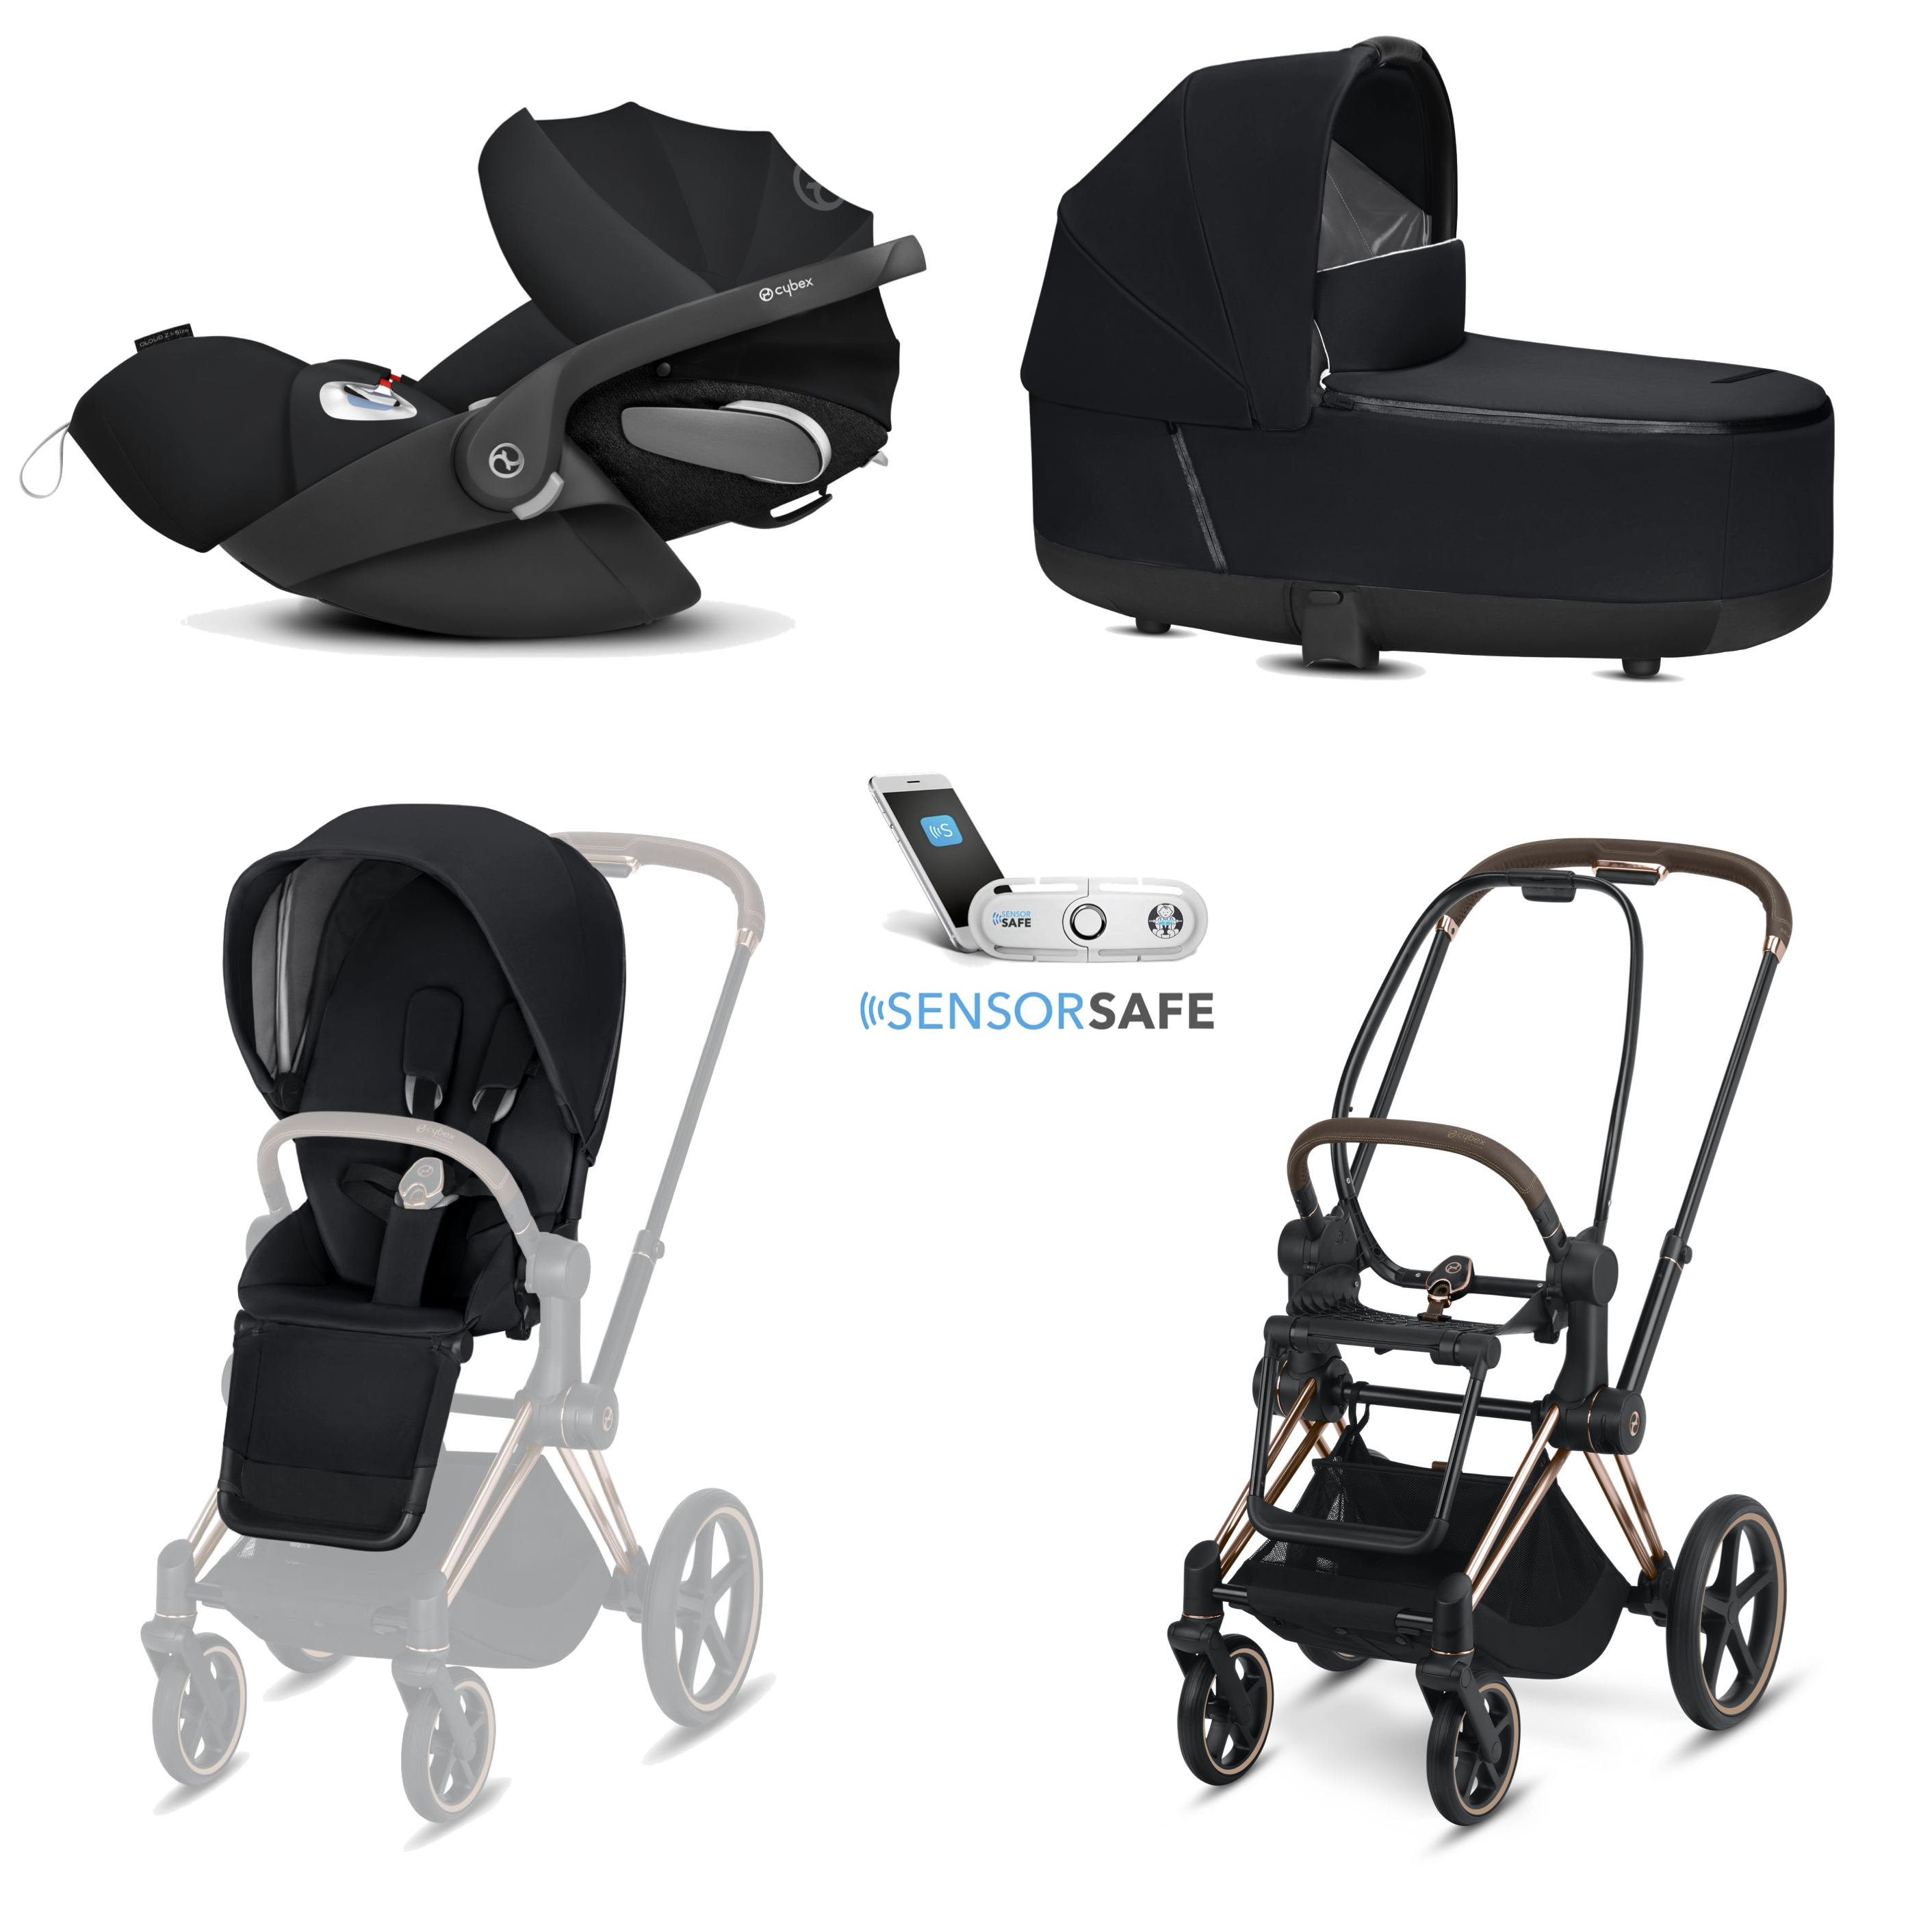 Cybex Platinum Trio Priam con Cloud Z Sensor Safe